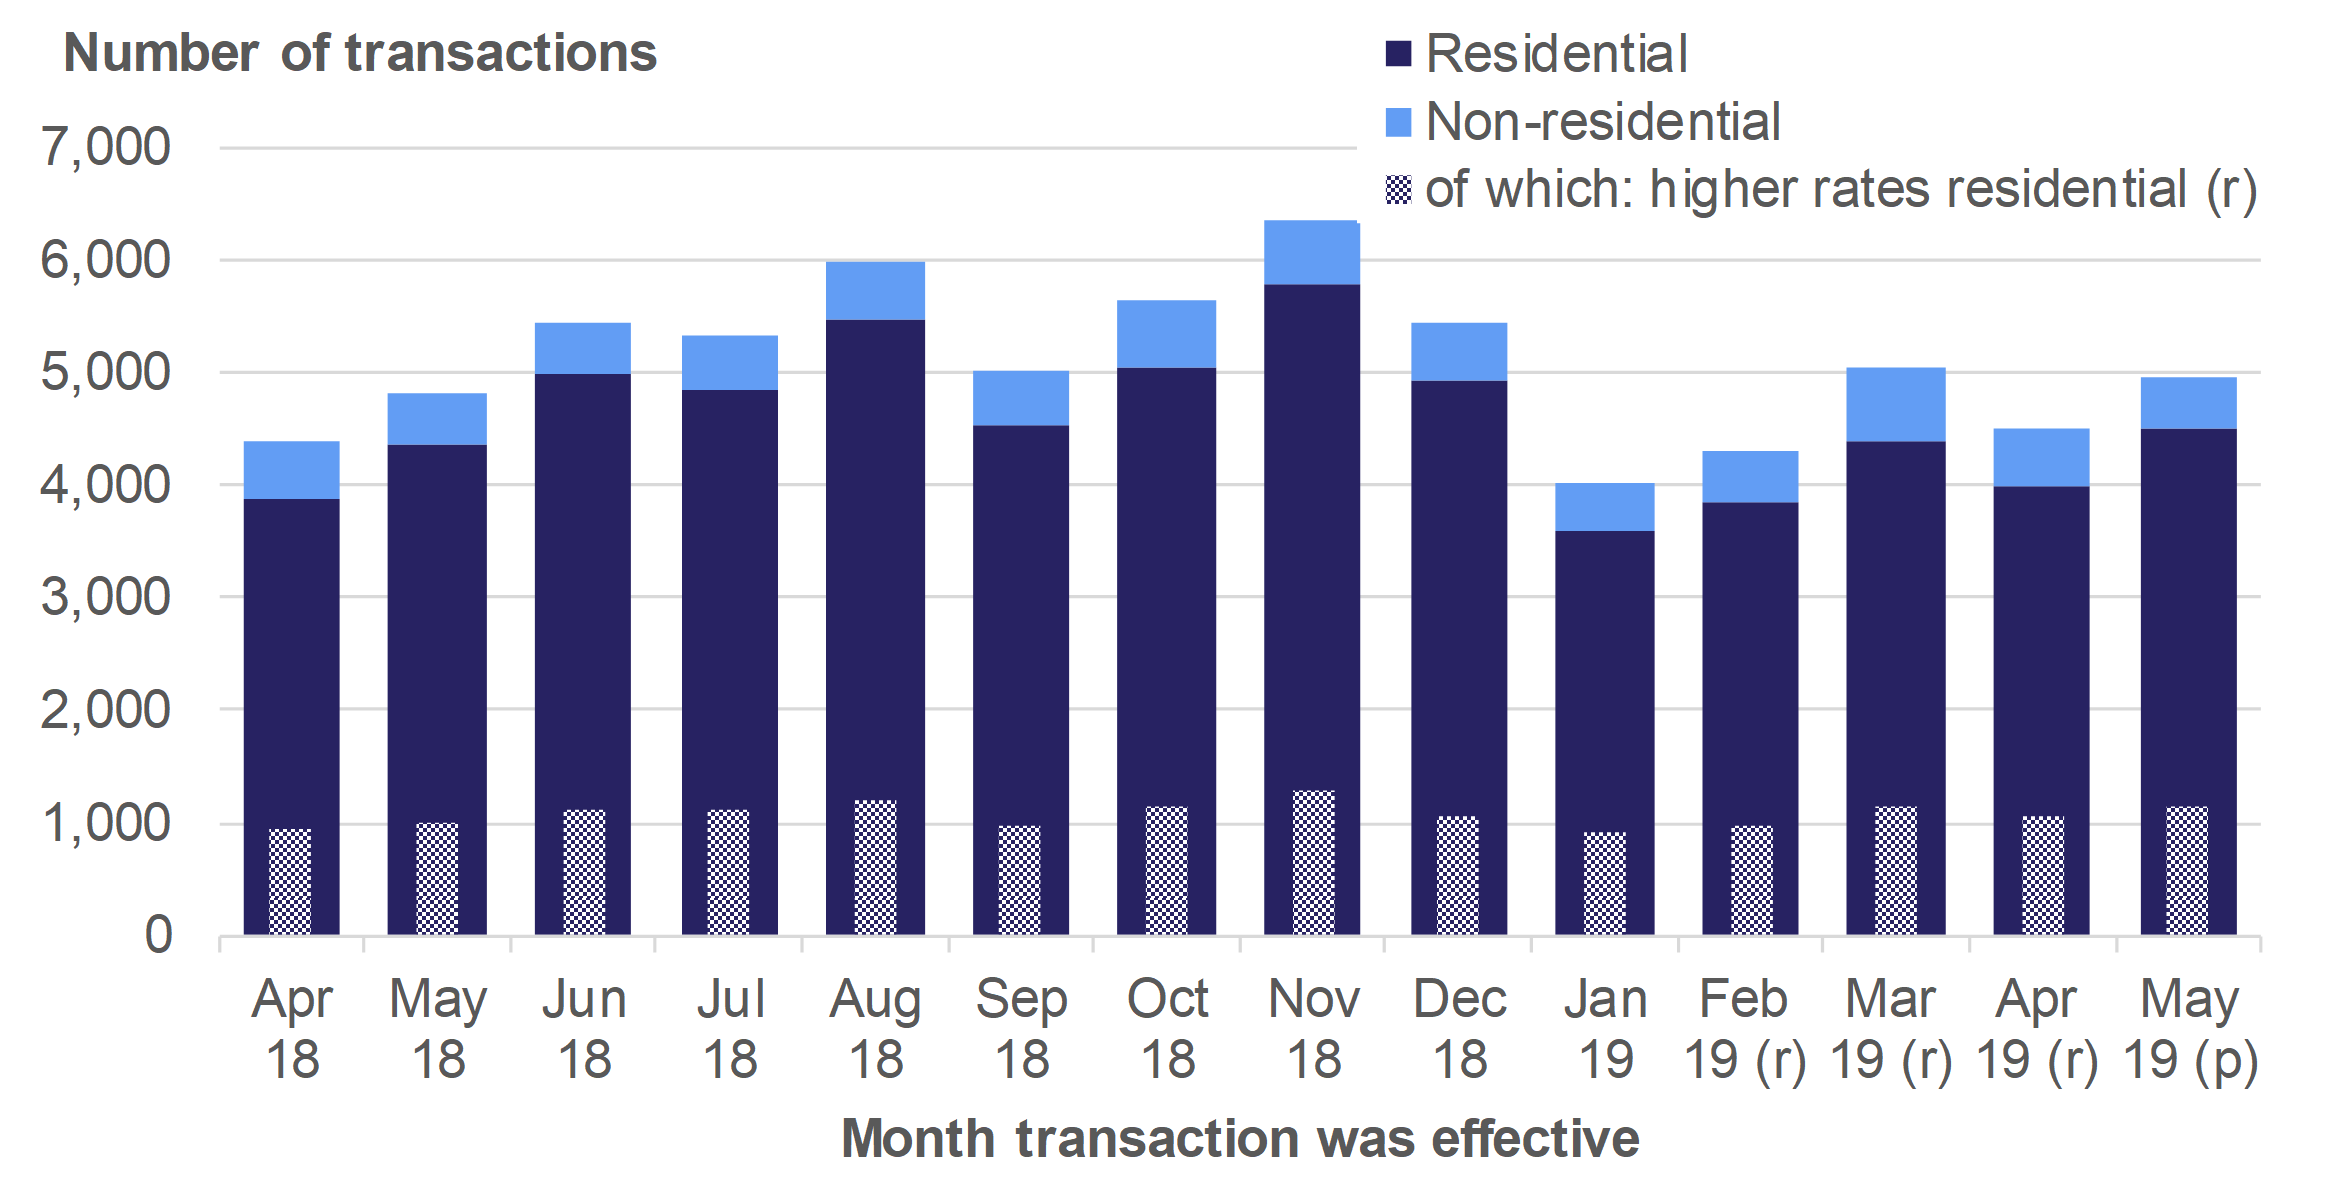 Figure 2.4 shows the monthly numbers of reported notifiable transactions from April 2018 to May 2019, for residential and non-residential transactions